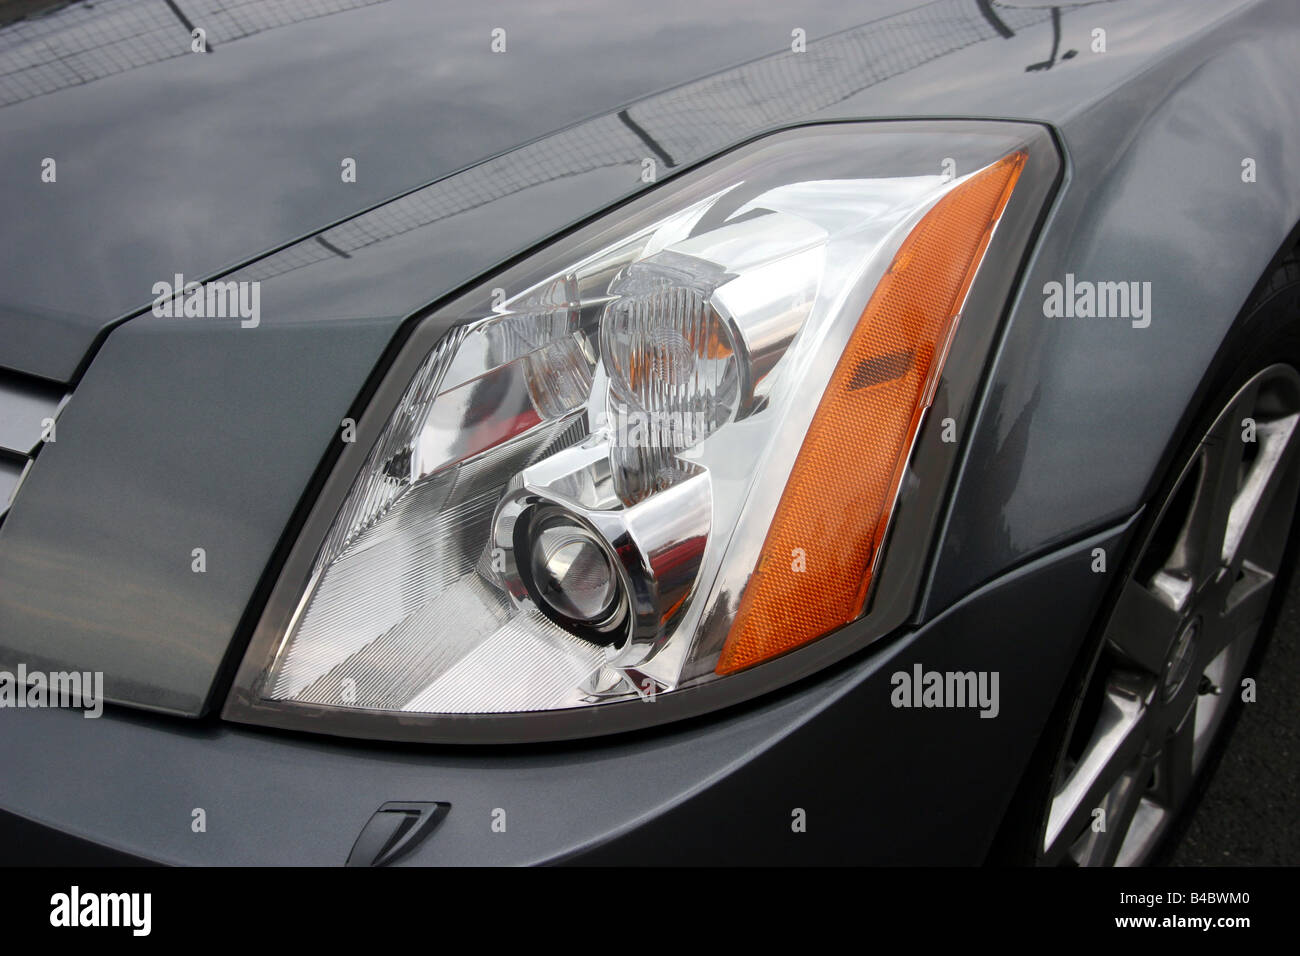 Xlr Stock Photos Images Alamy Cadillac Wiring Car Convertible Model Year 2004 Anthracite Detailed View